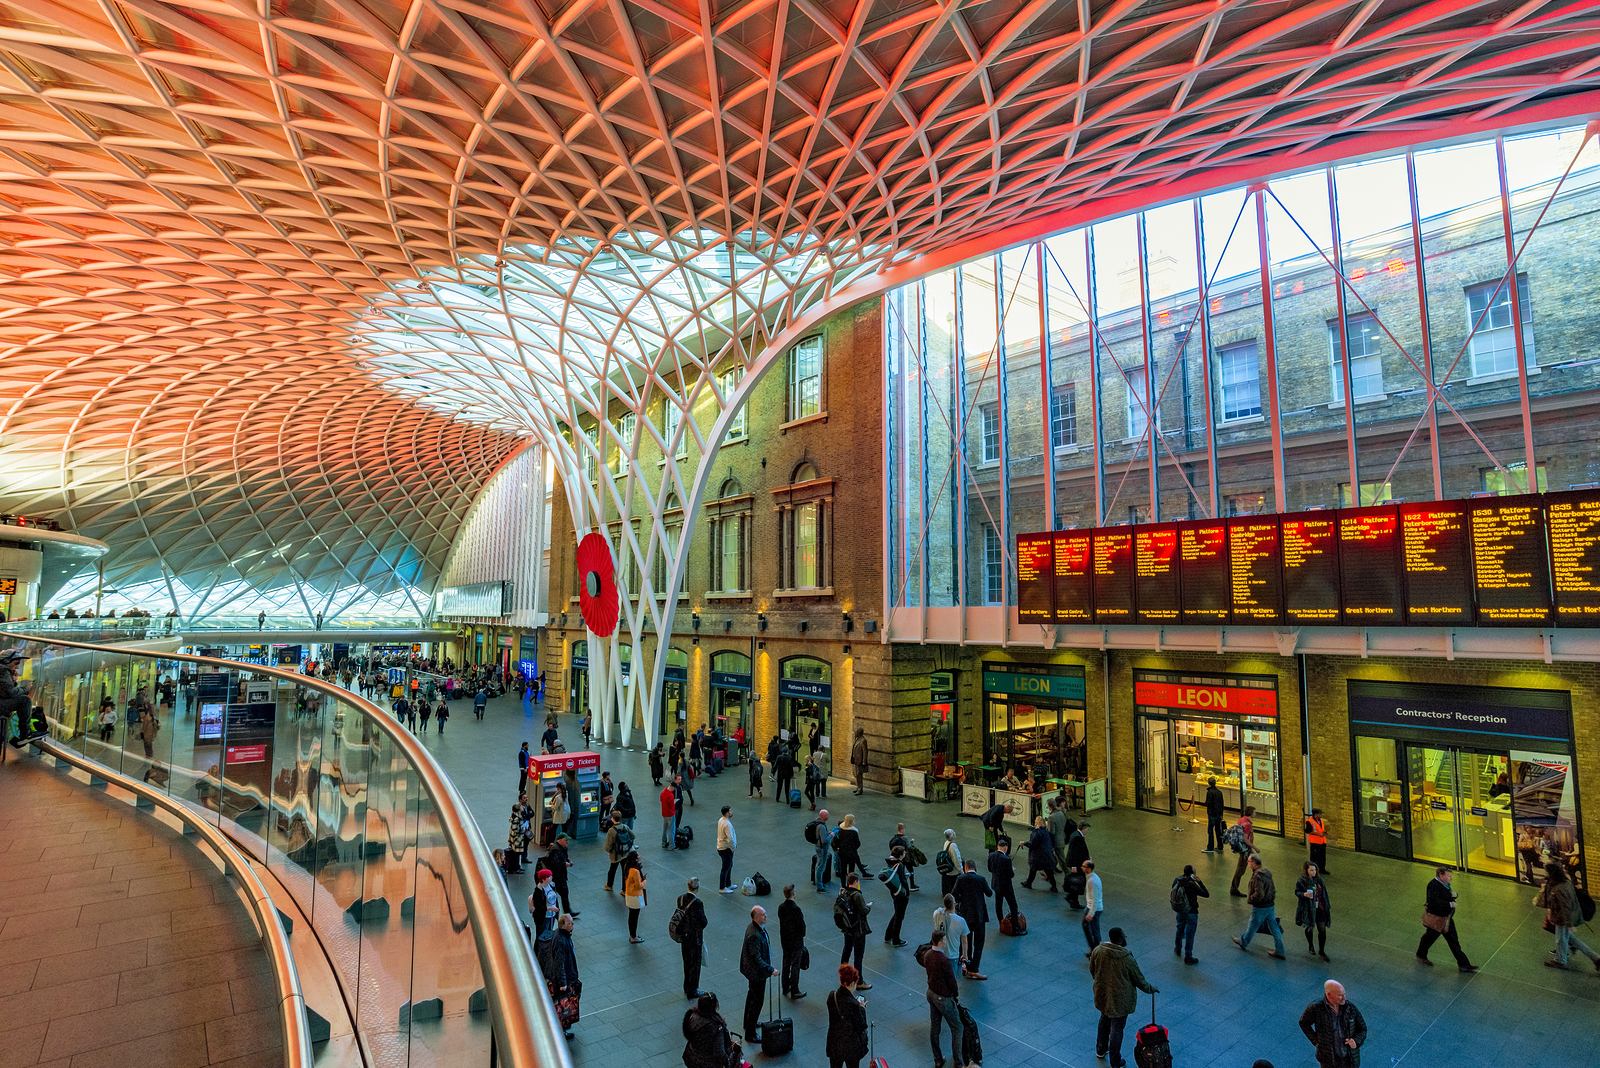 The interior architecture of King's Cross St Pancras Station - FX Scaffolding Services Essex